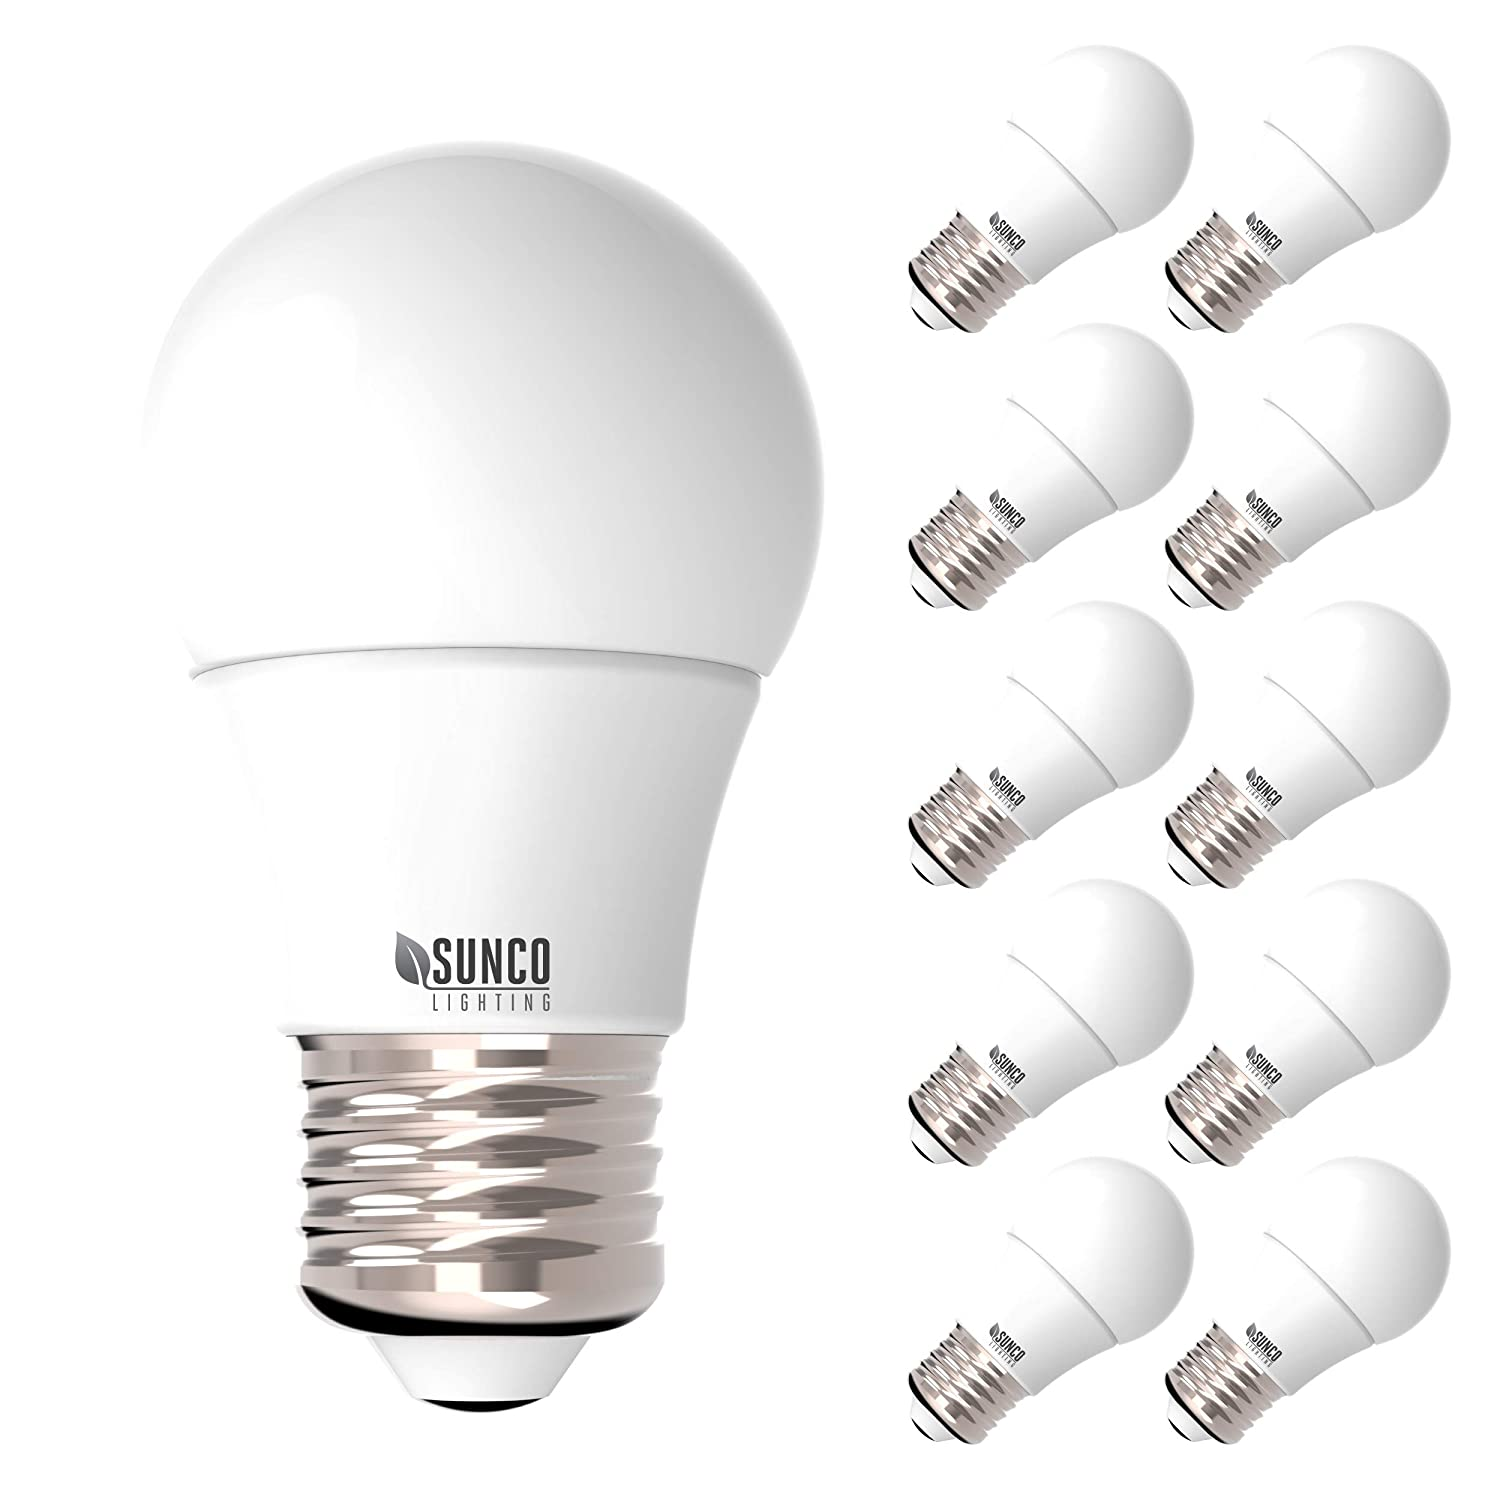 Sunco Lighting 10 Pack A15 LED Bulb, 8W=60W, 5000K Daylight, Dimmable, 800 LM, E26 Base, Indoor/Outdoor Light - UL, Energy Star